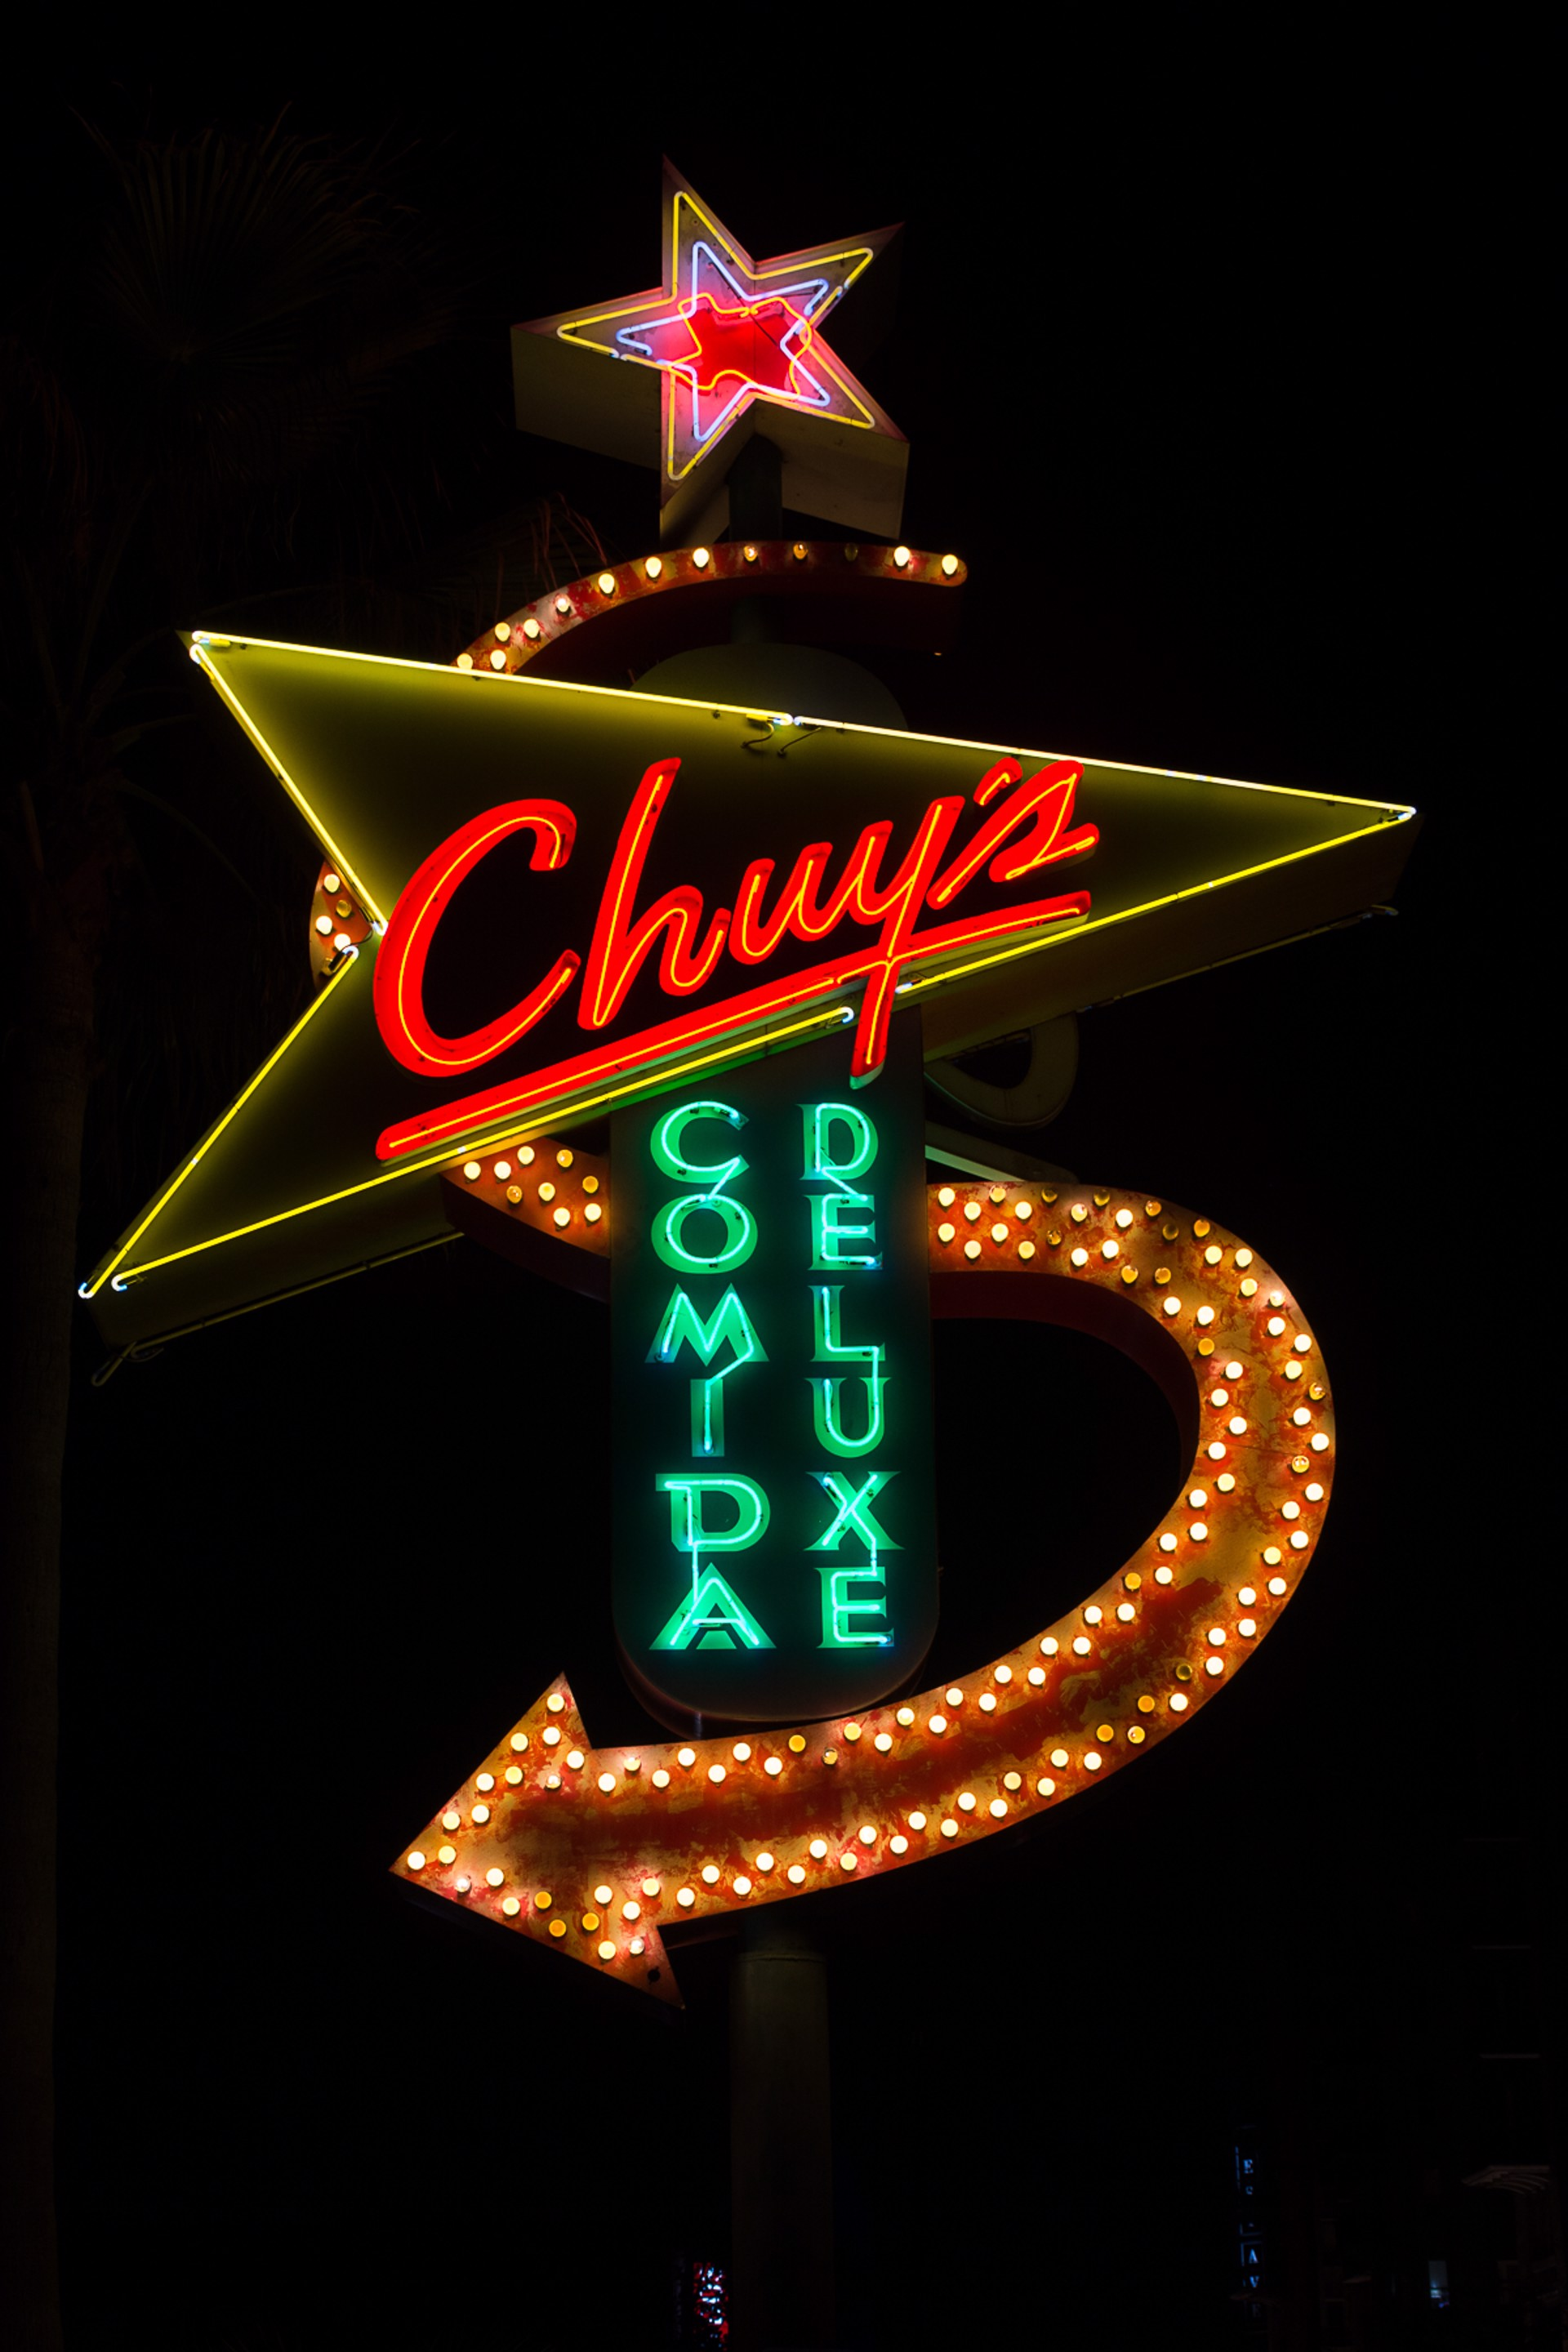 Chuy's by James C. Ritchie